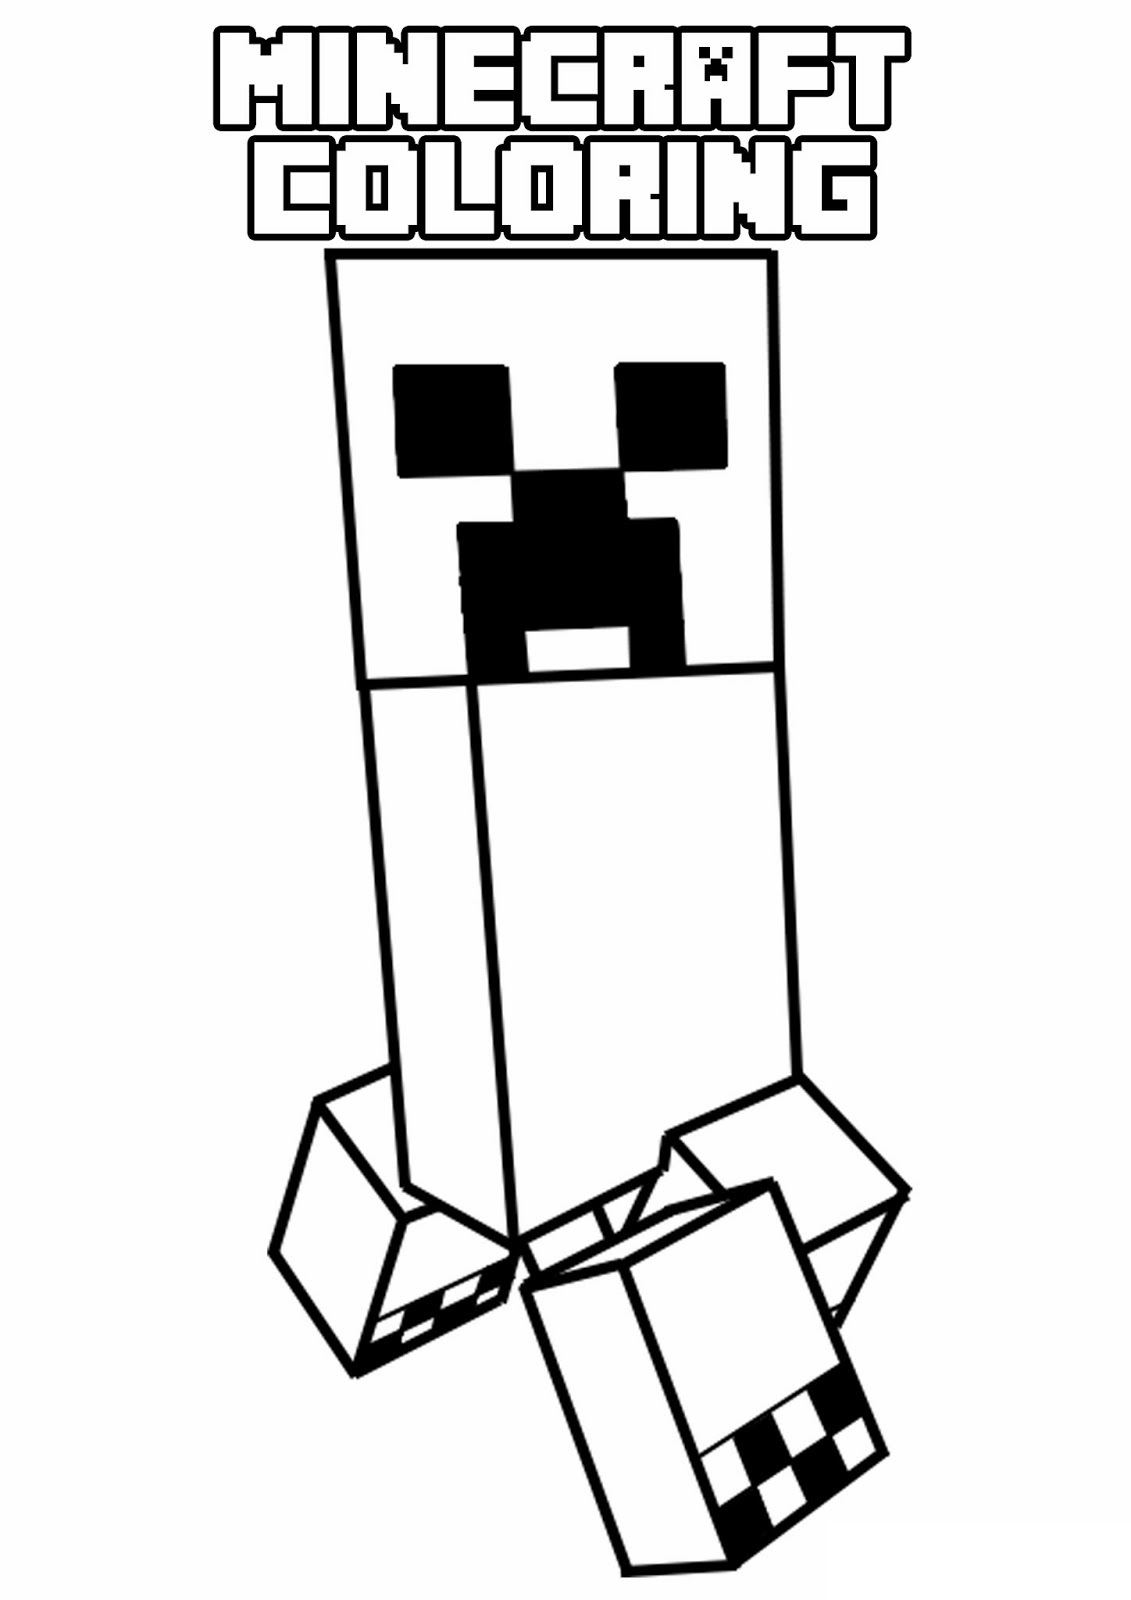 Ausmalbilder Minecraft Creeper : Creeper Drawing At Getdrawings Com Free For Personal Use Creeper